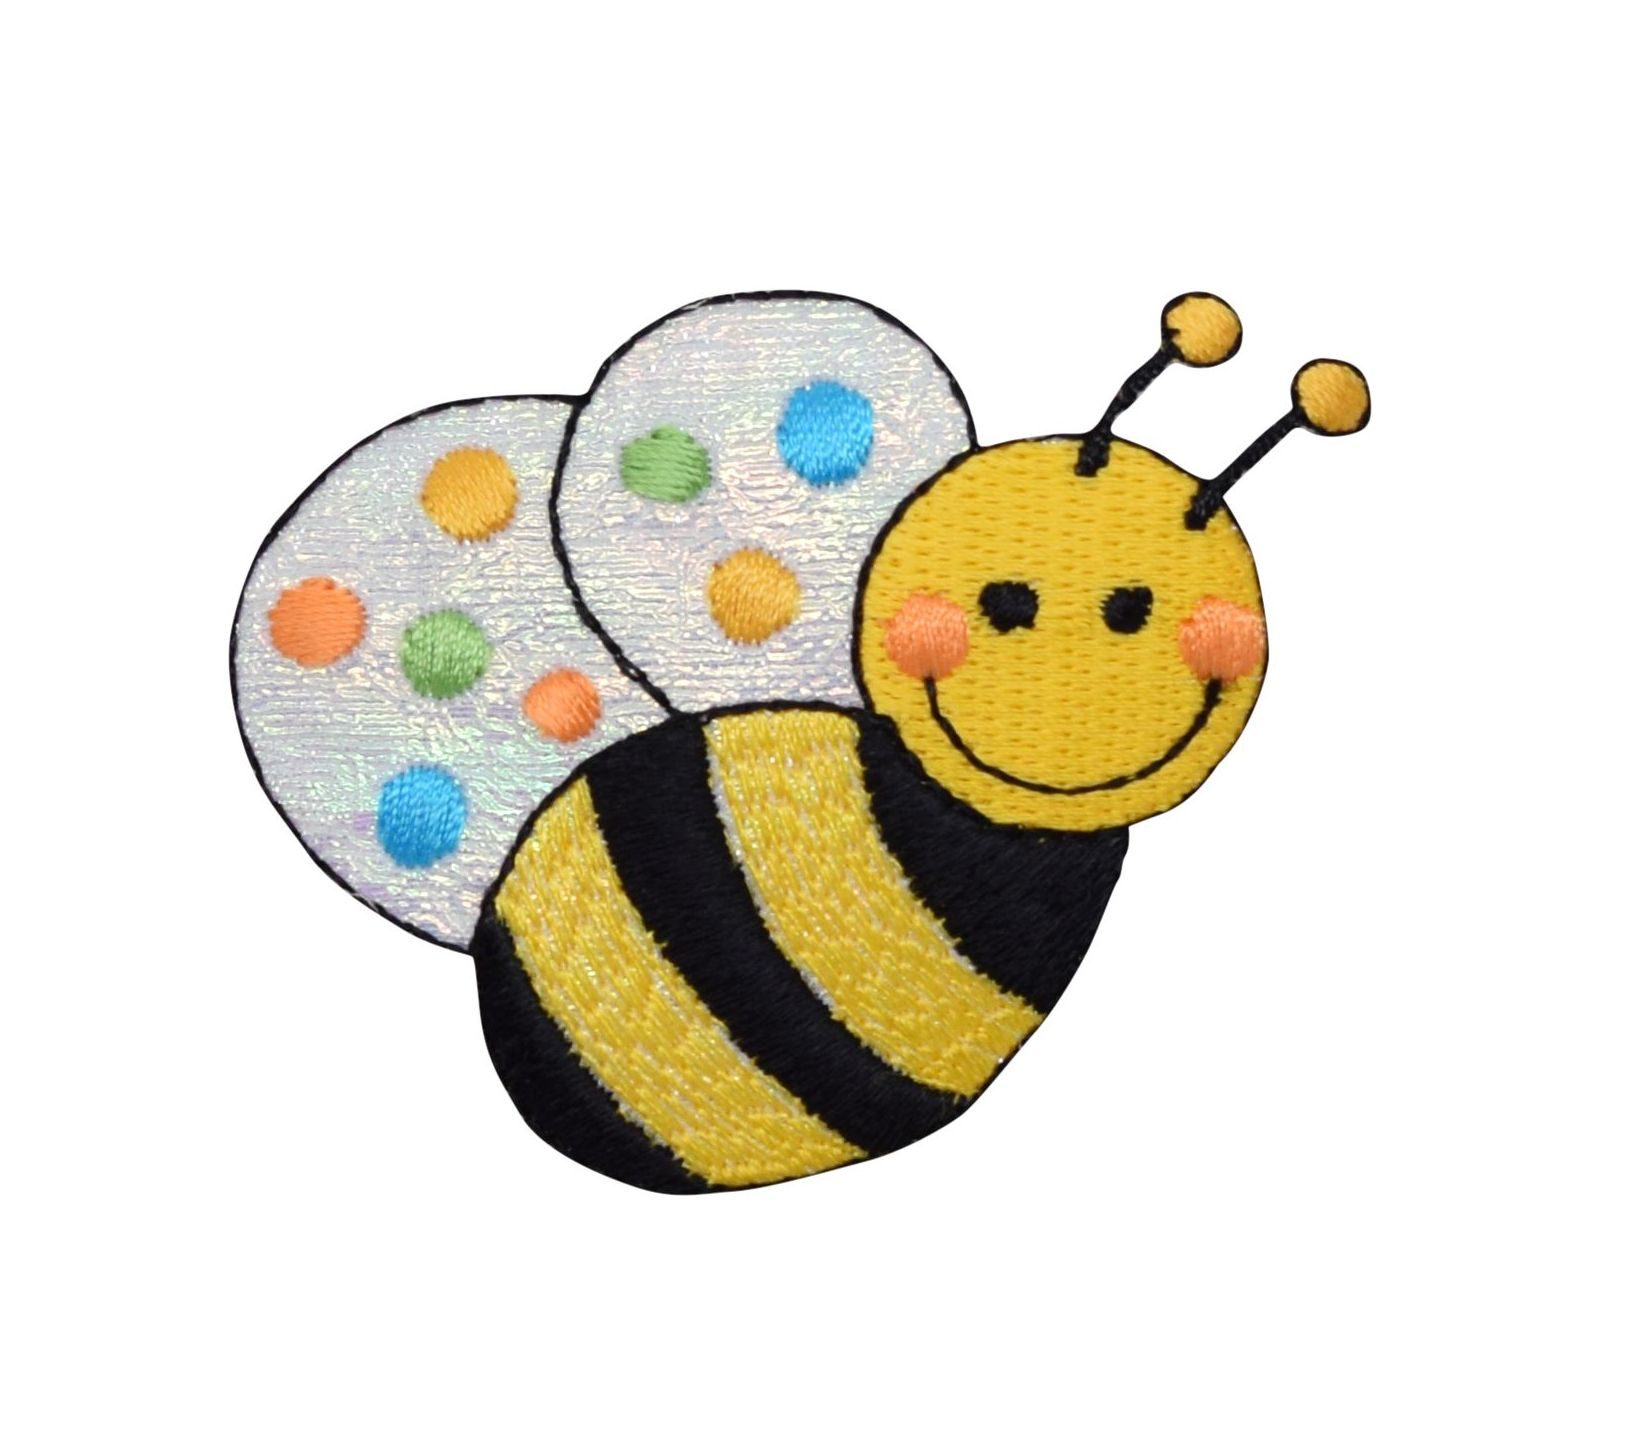 Embroidered Iron-On Applique Bumble Bee 3//4 inch